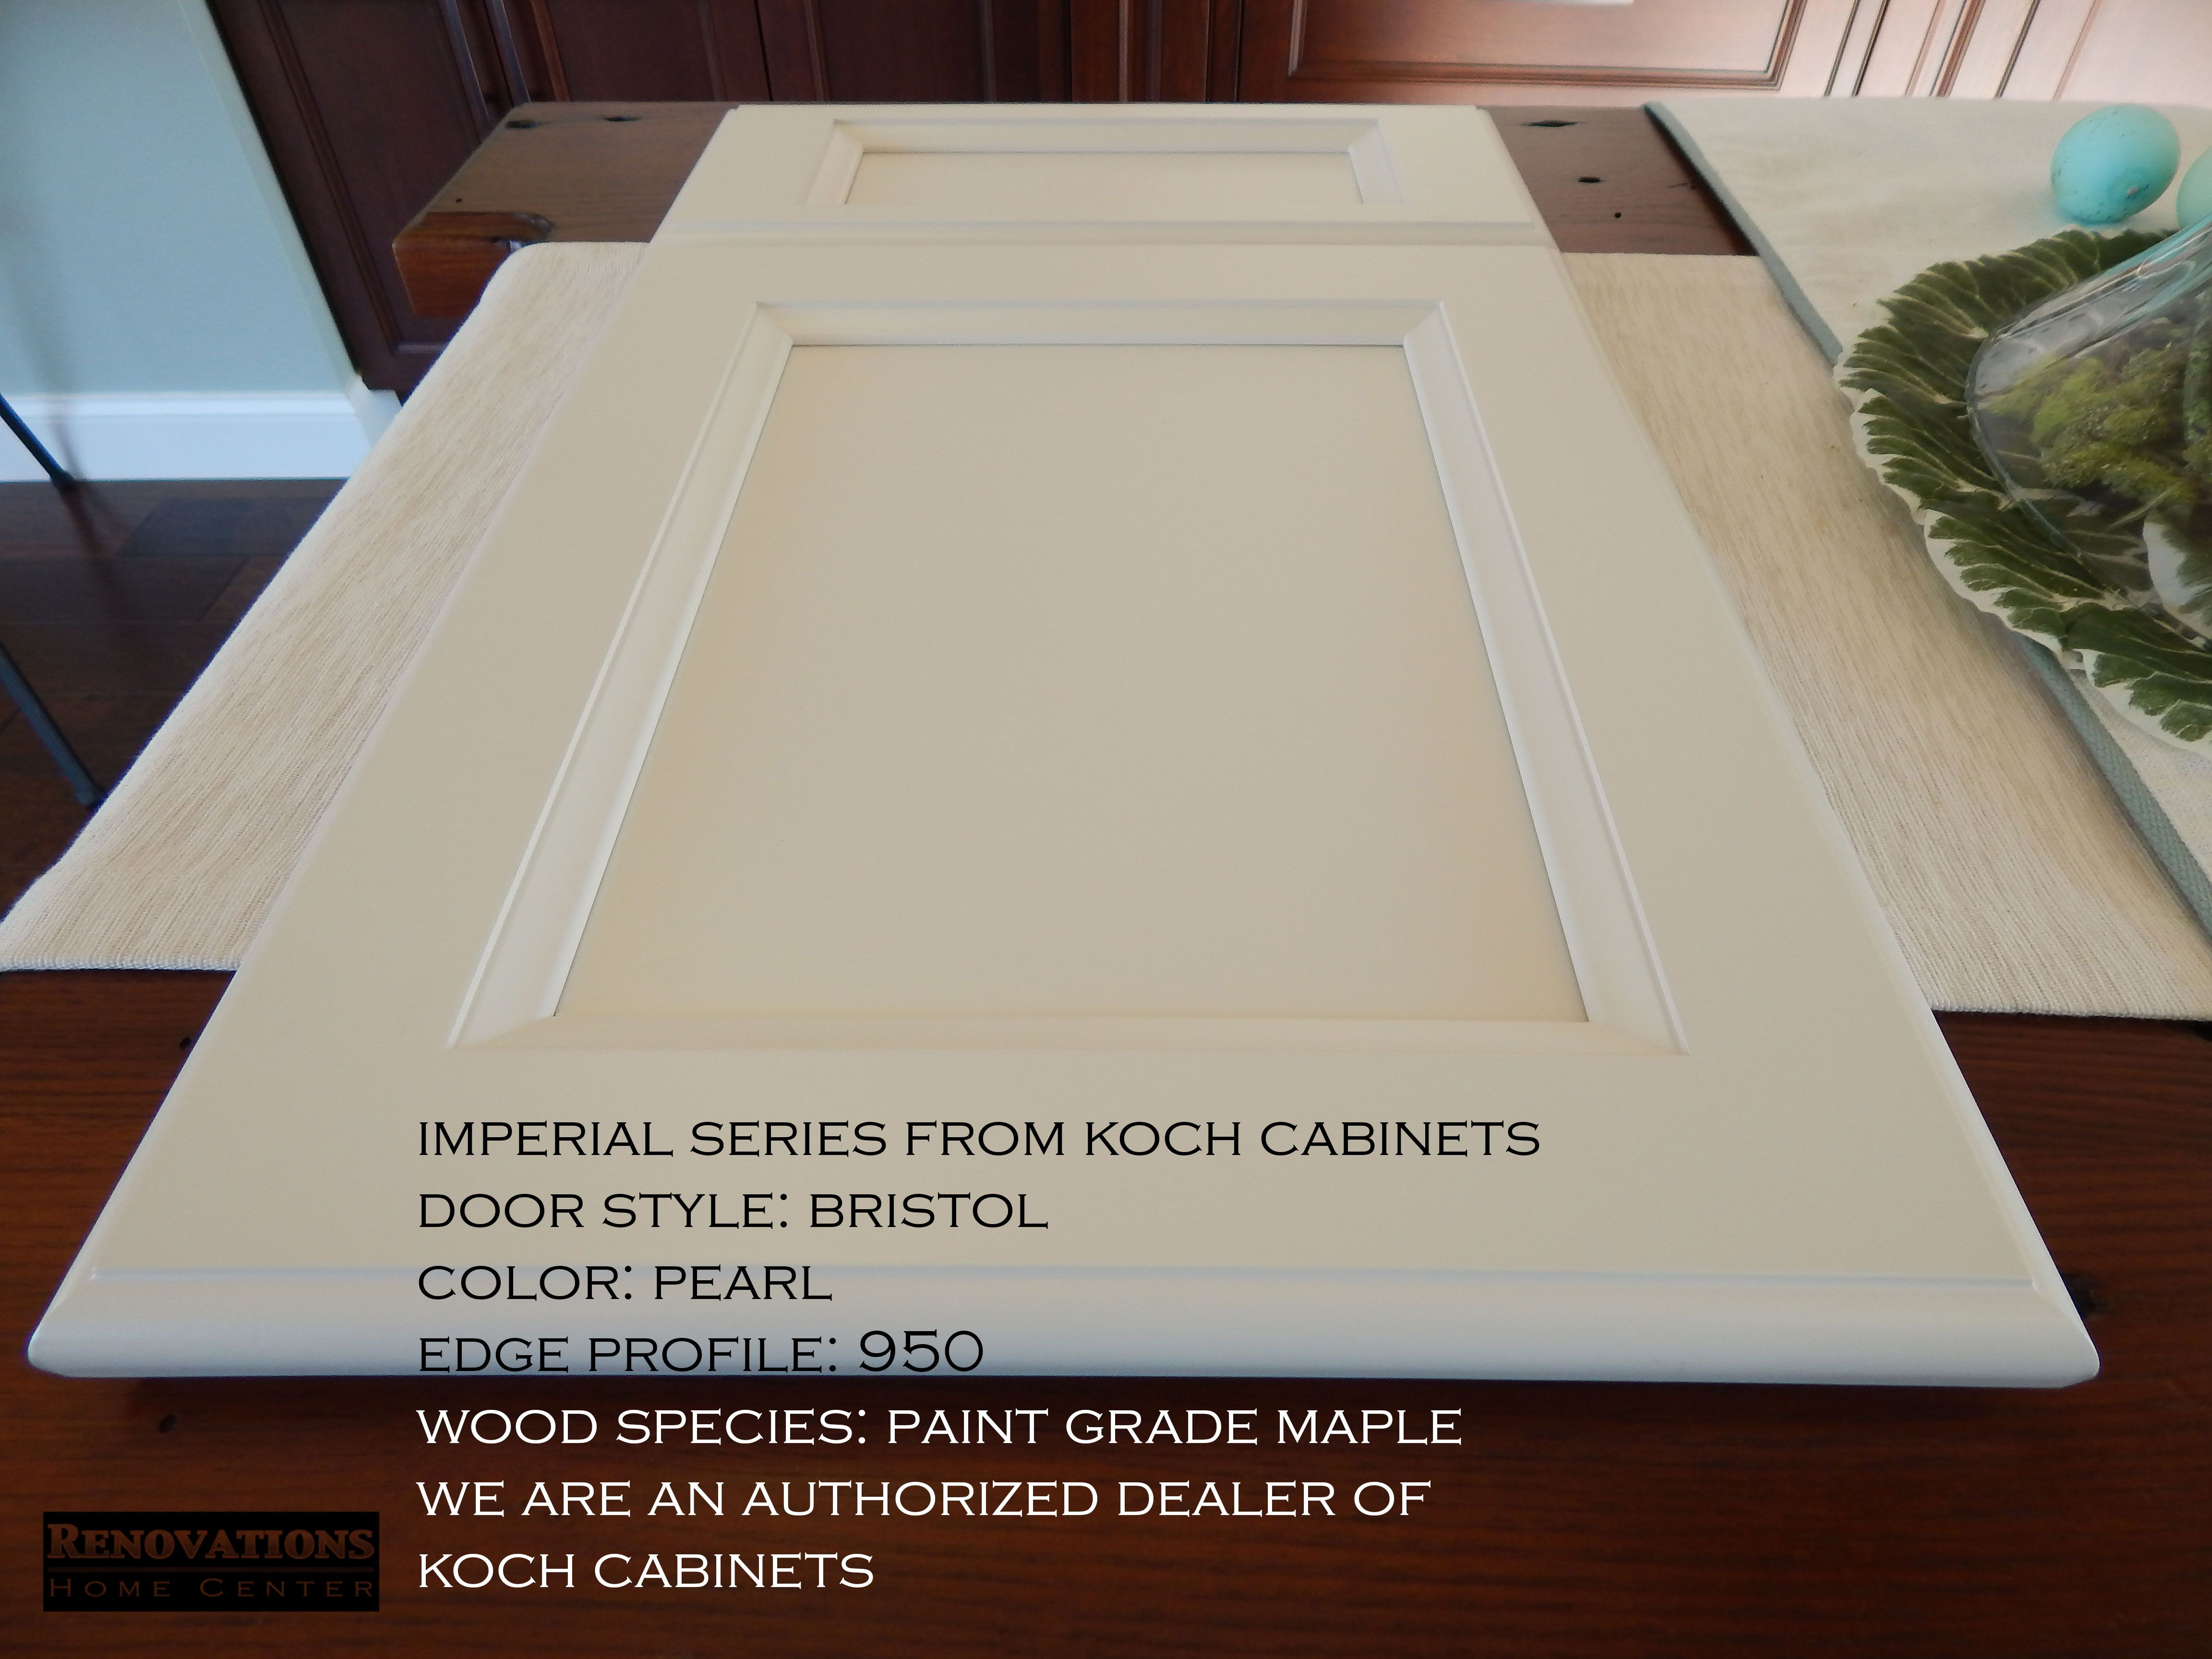 Imperial Series From Koch Cabinets Door Style Bristol Edge Profile 950 Wood Species Paint Grade M Wood Species Kitchen Cabinets In Bathroom Edge Profile